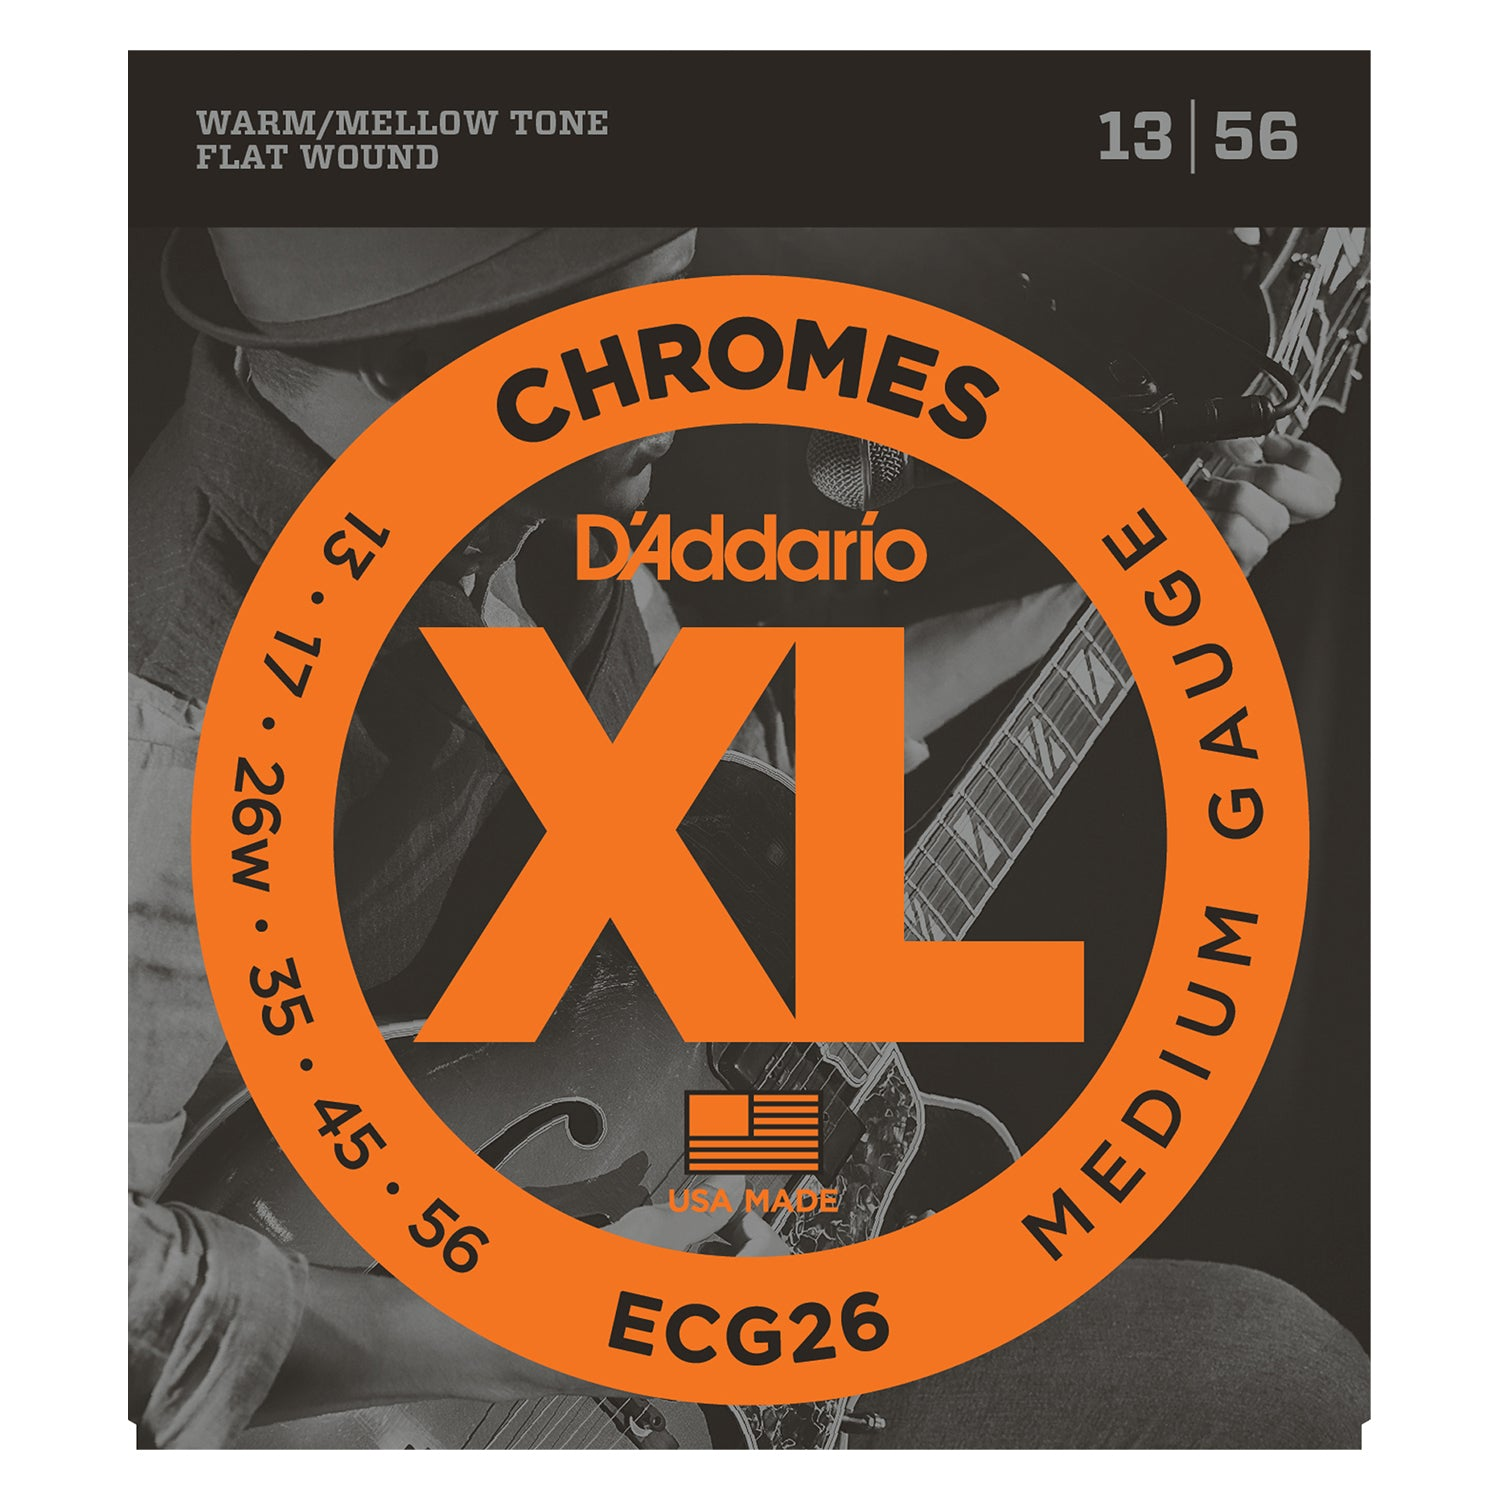 D'Addario ECG26 Chromes Flat Wound Electric Guitar Strings, Medium, 13-56